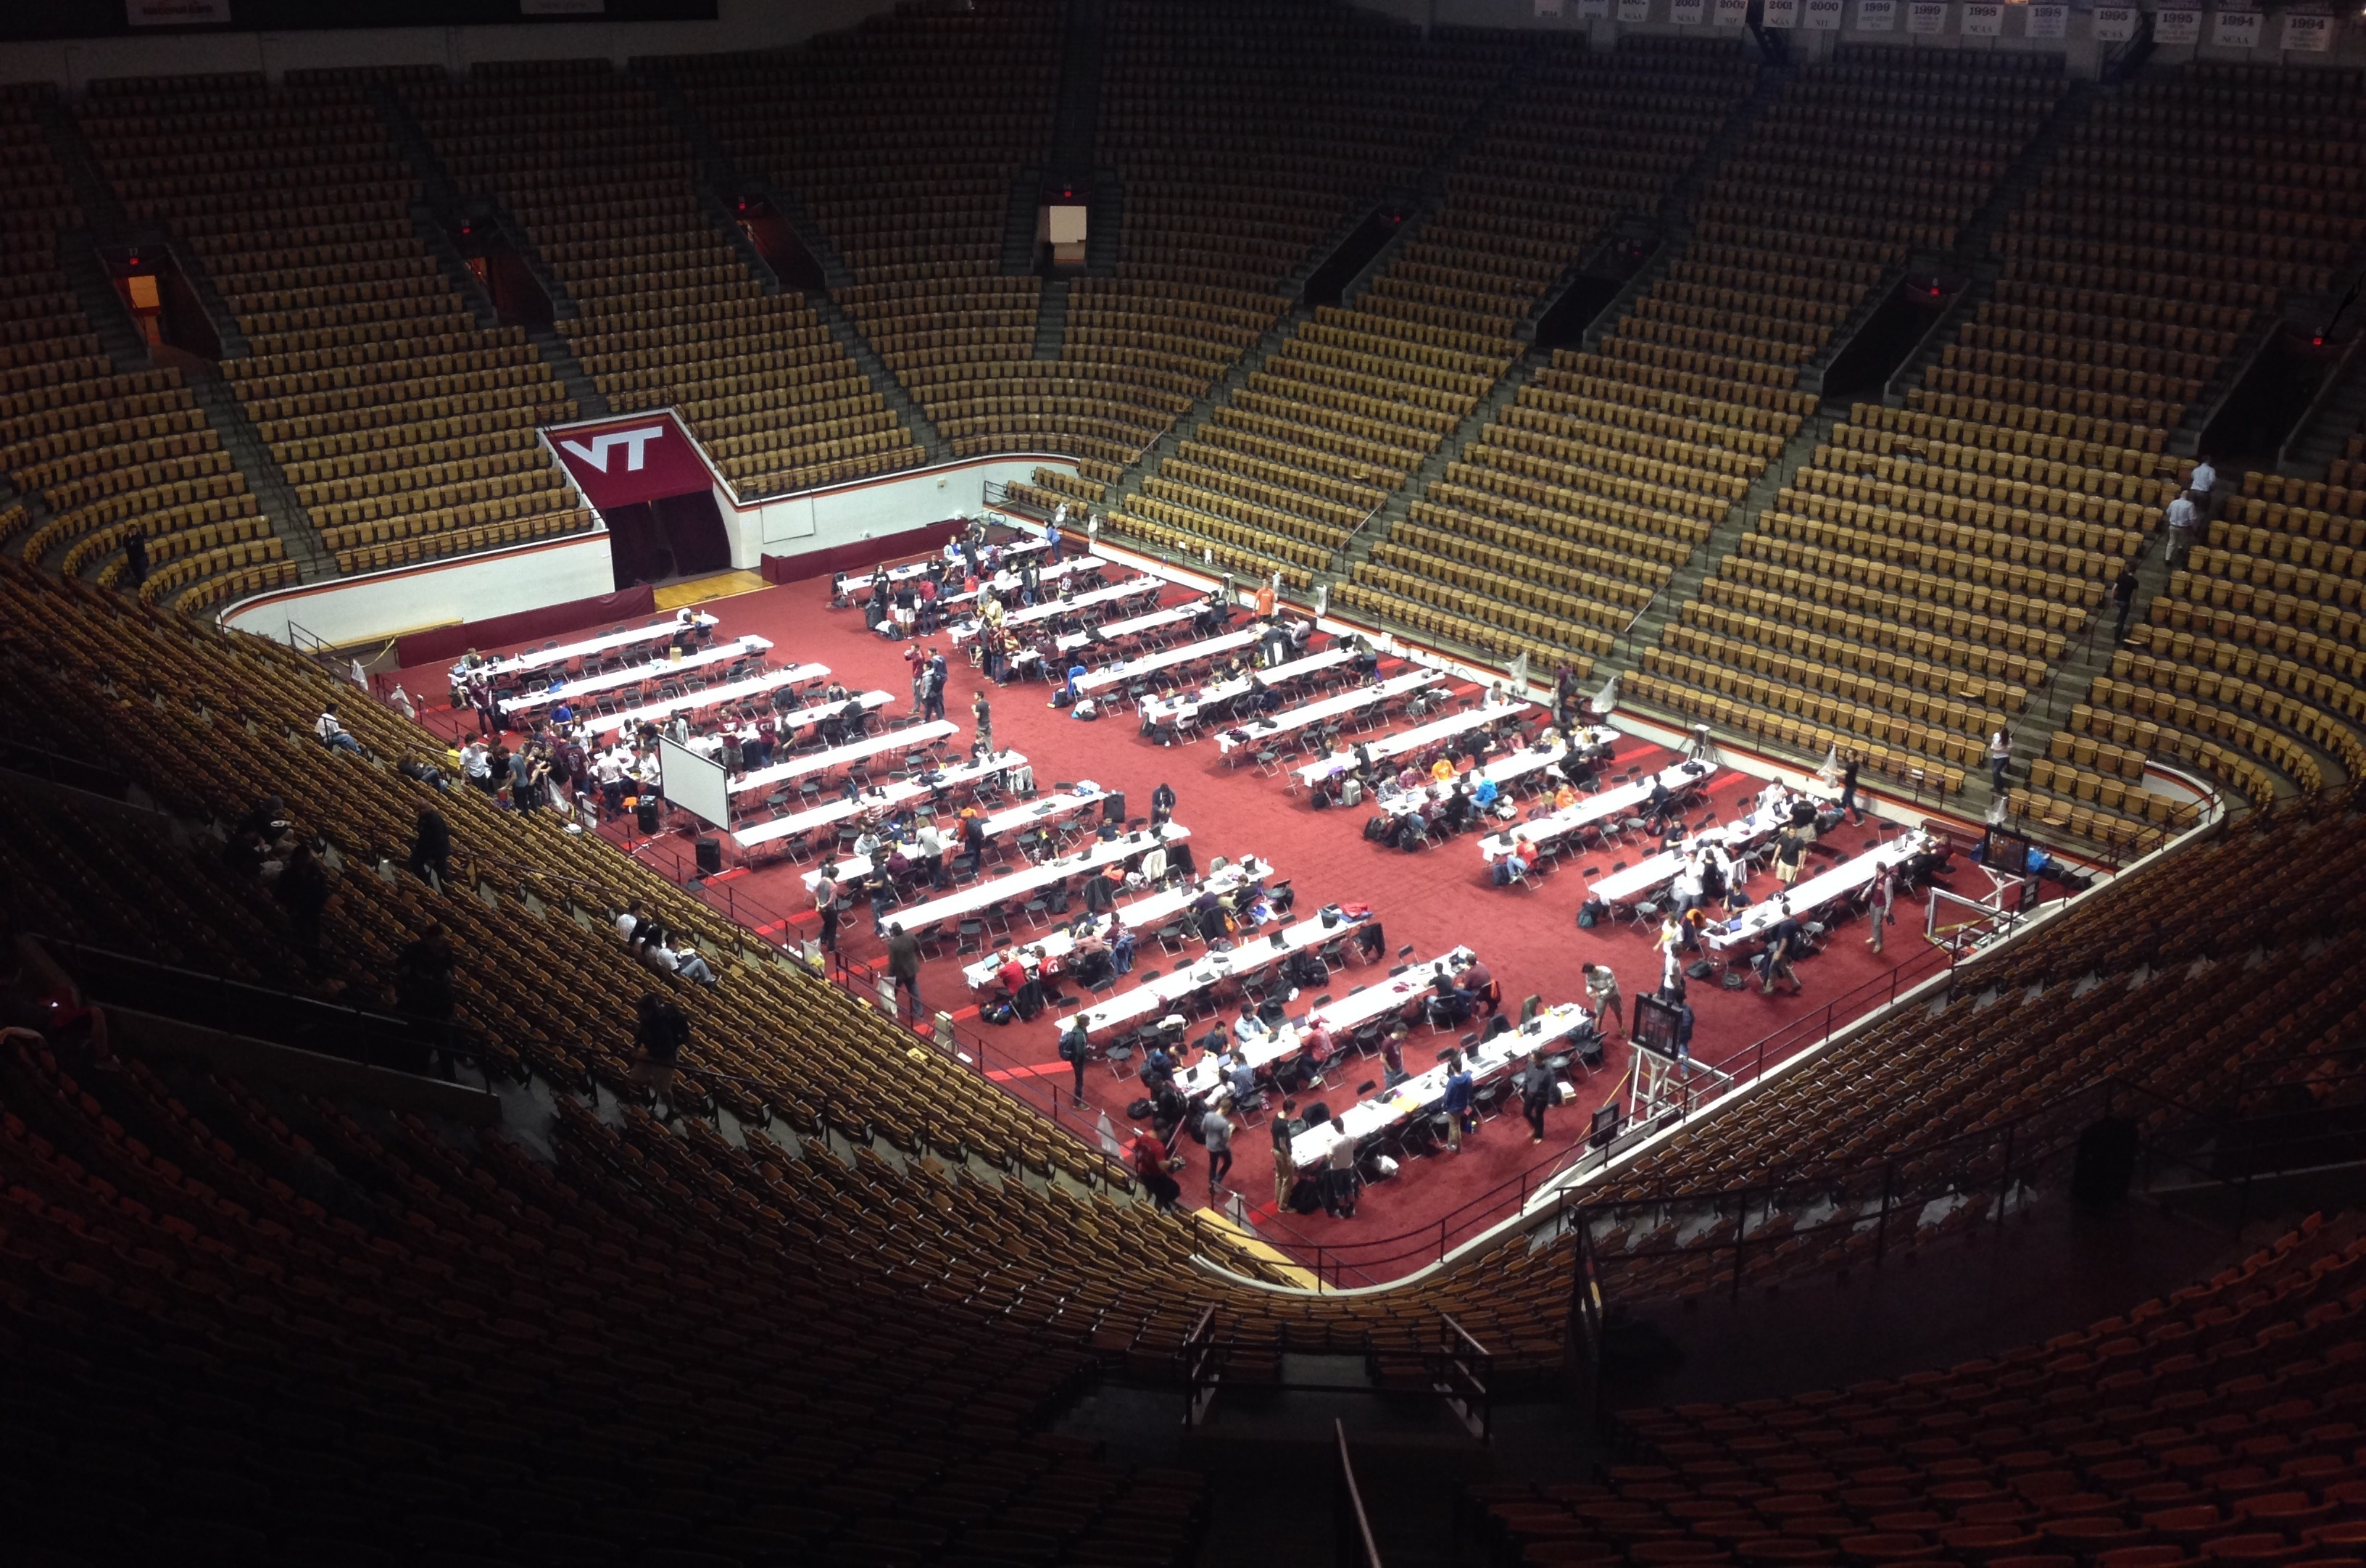 VT Hacks: The Colossal Hackathon in Cassell Coliseum